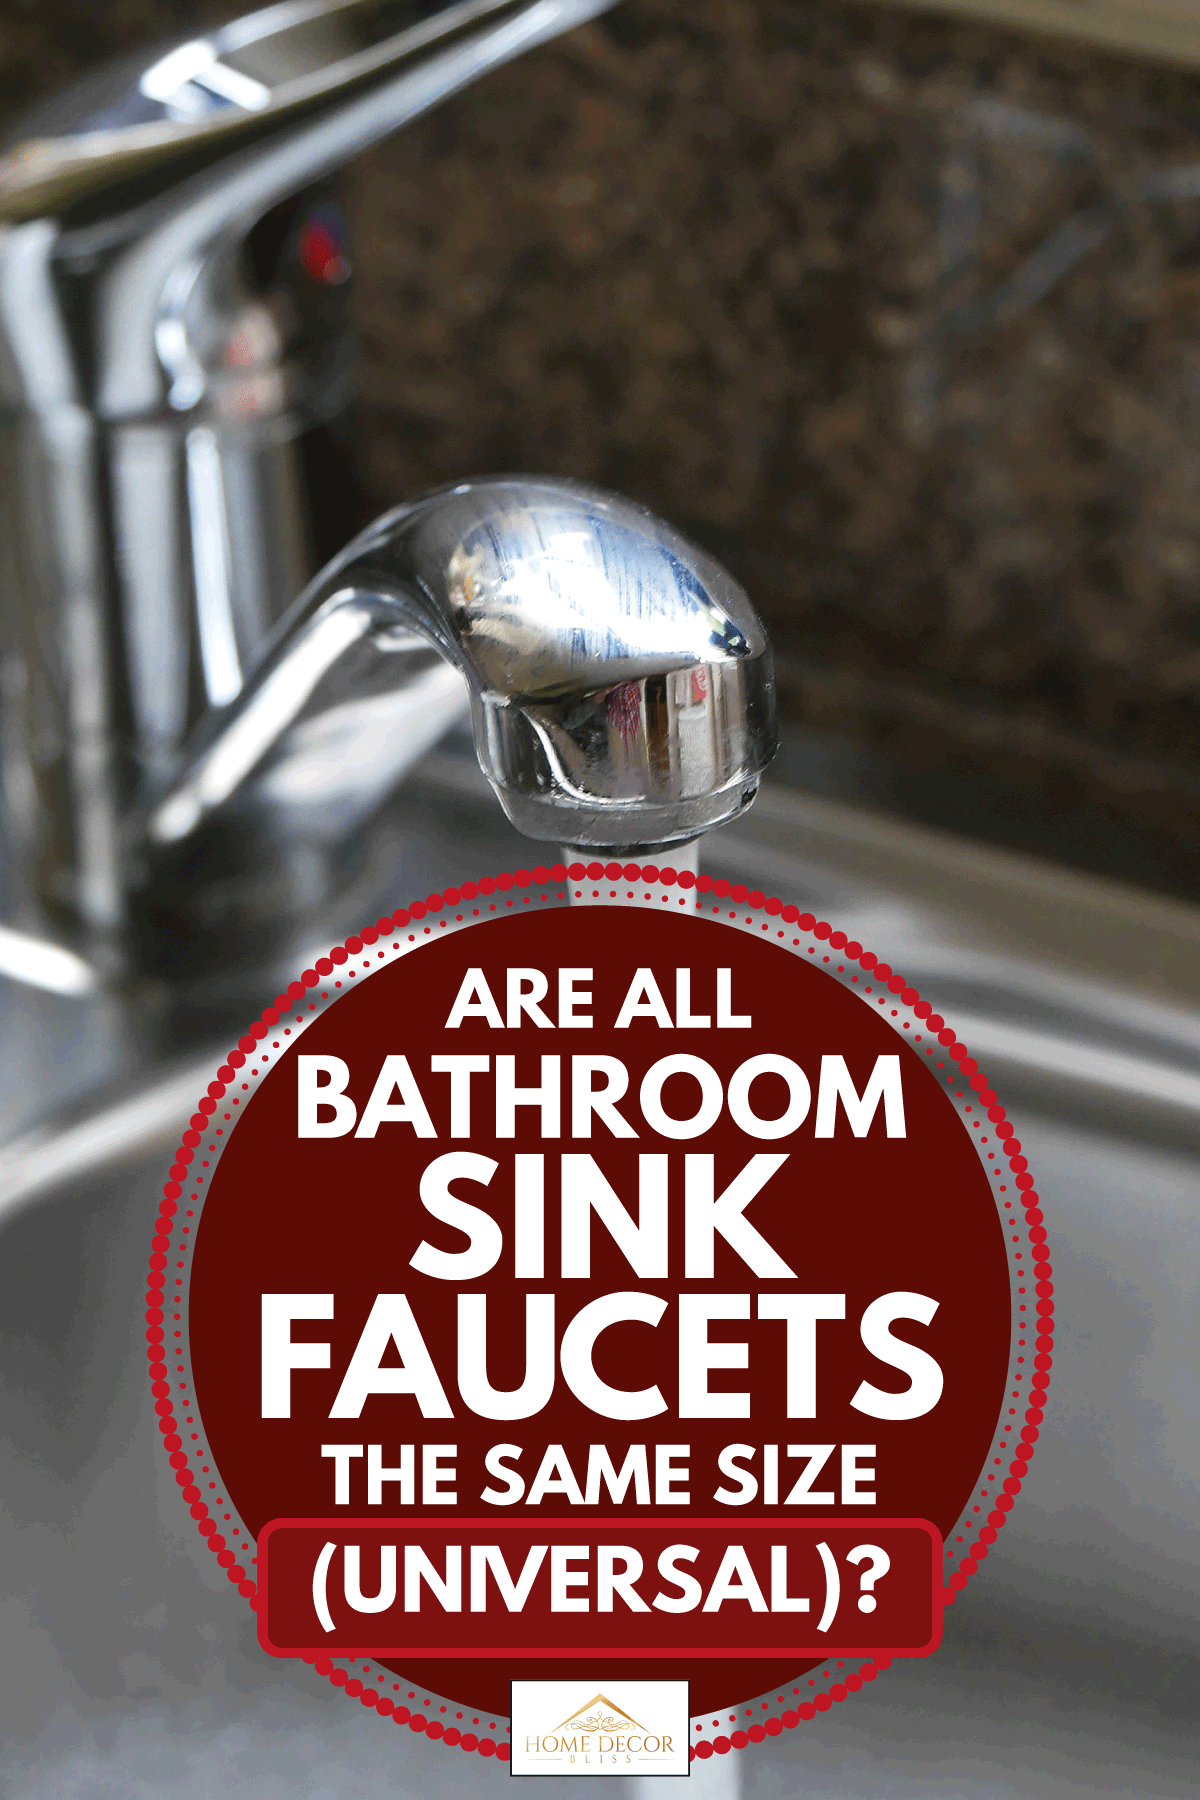 Water flowing from chrome plated tap, Are All Bathroom Sink Faucets The Same Size (Universal)